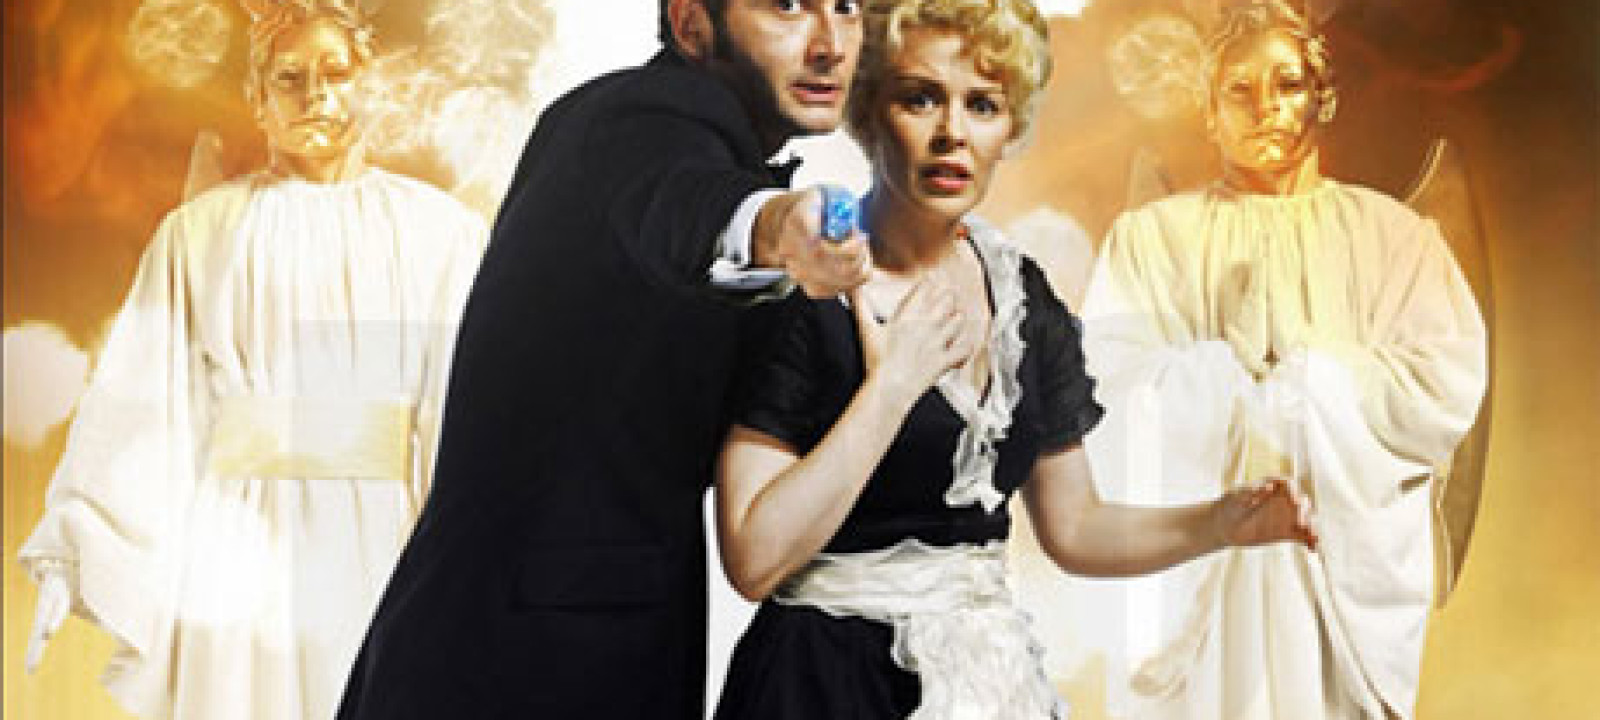 David Tennant and Kylie Minogue in 'Doctor Who'